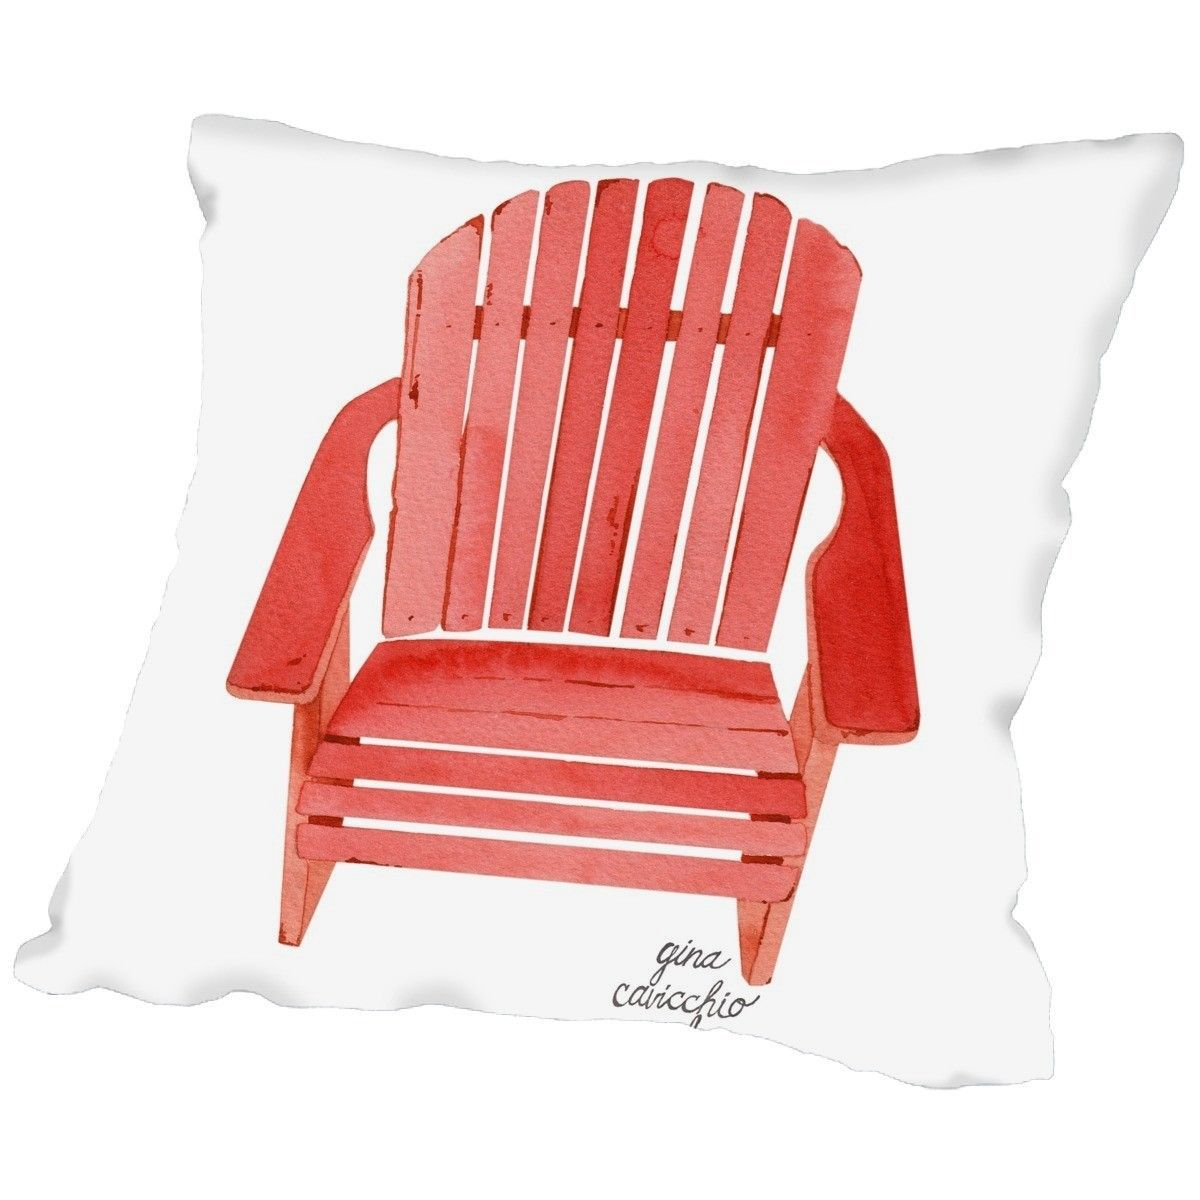 Gina maher leary adirondack chair throw pillow products